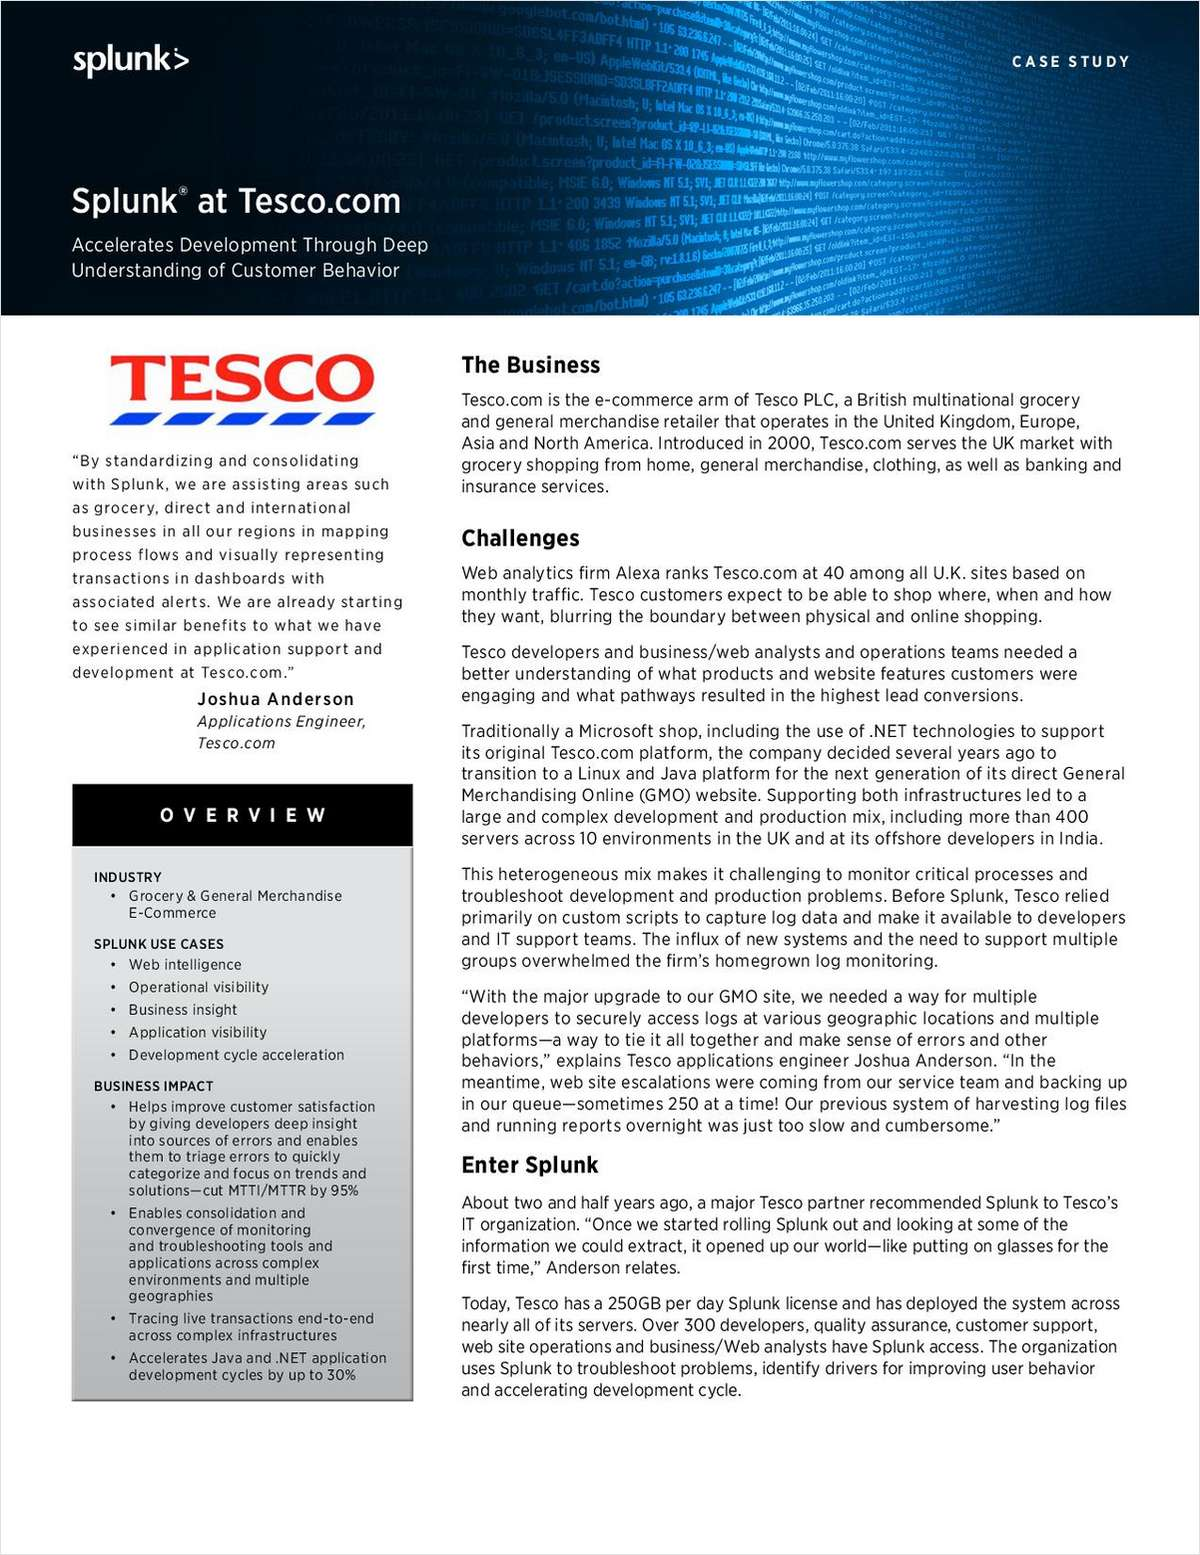 an analysis of the operational management within tesco plc Accordingly, the purpose of this report is to investigate and analysis operations management in tesco the report will mainly go through three aspects of tesco's operations management: operations management performance objectives, planning and control in use, and measurement and improvement activities.